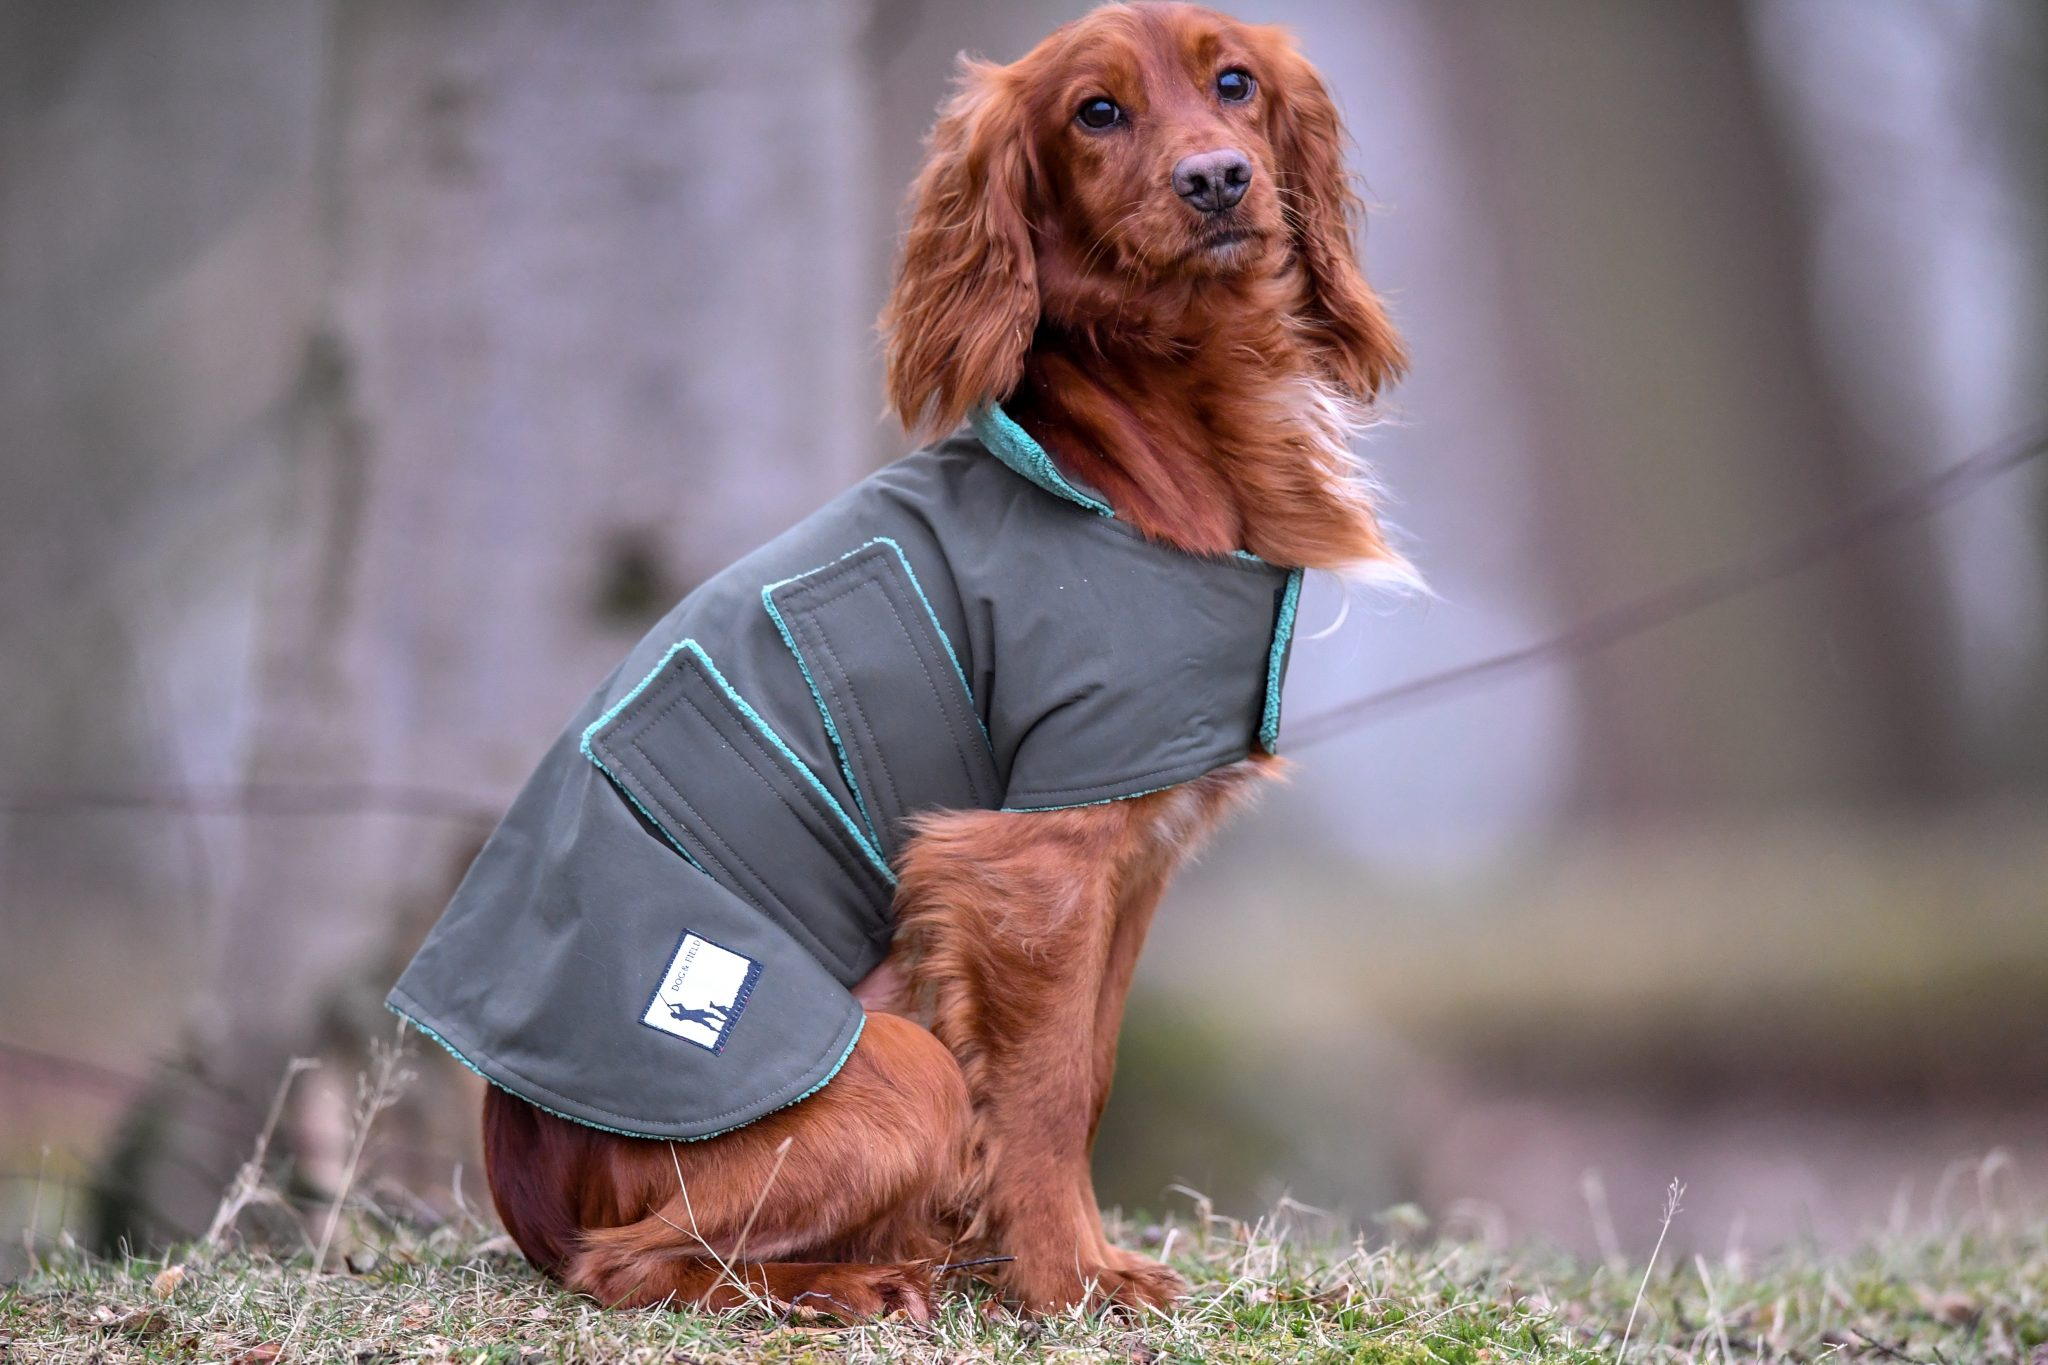 Dog and Field Waterproof Coat